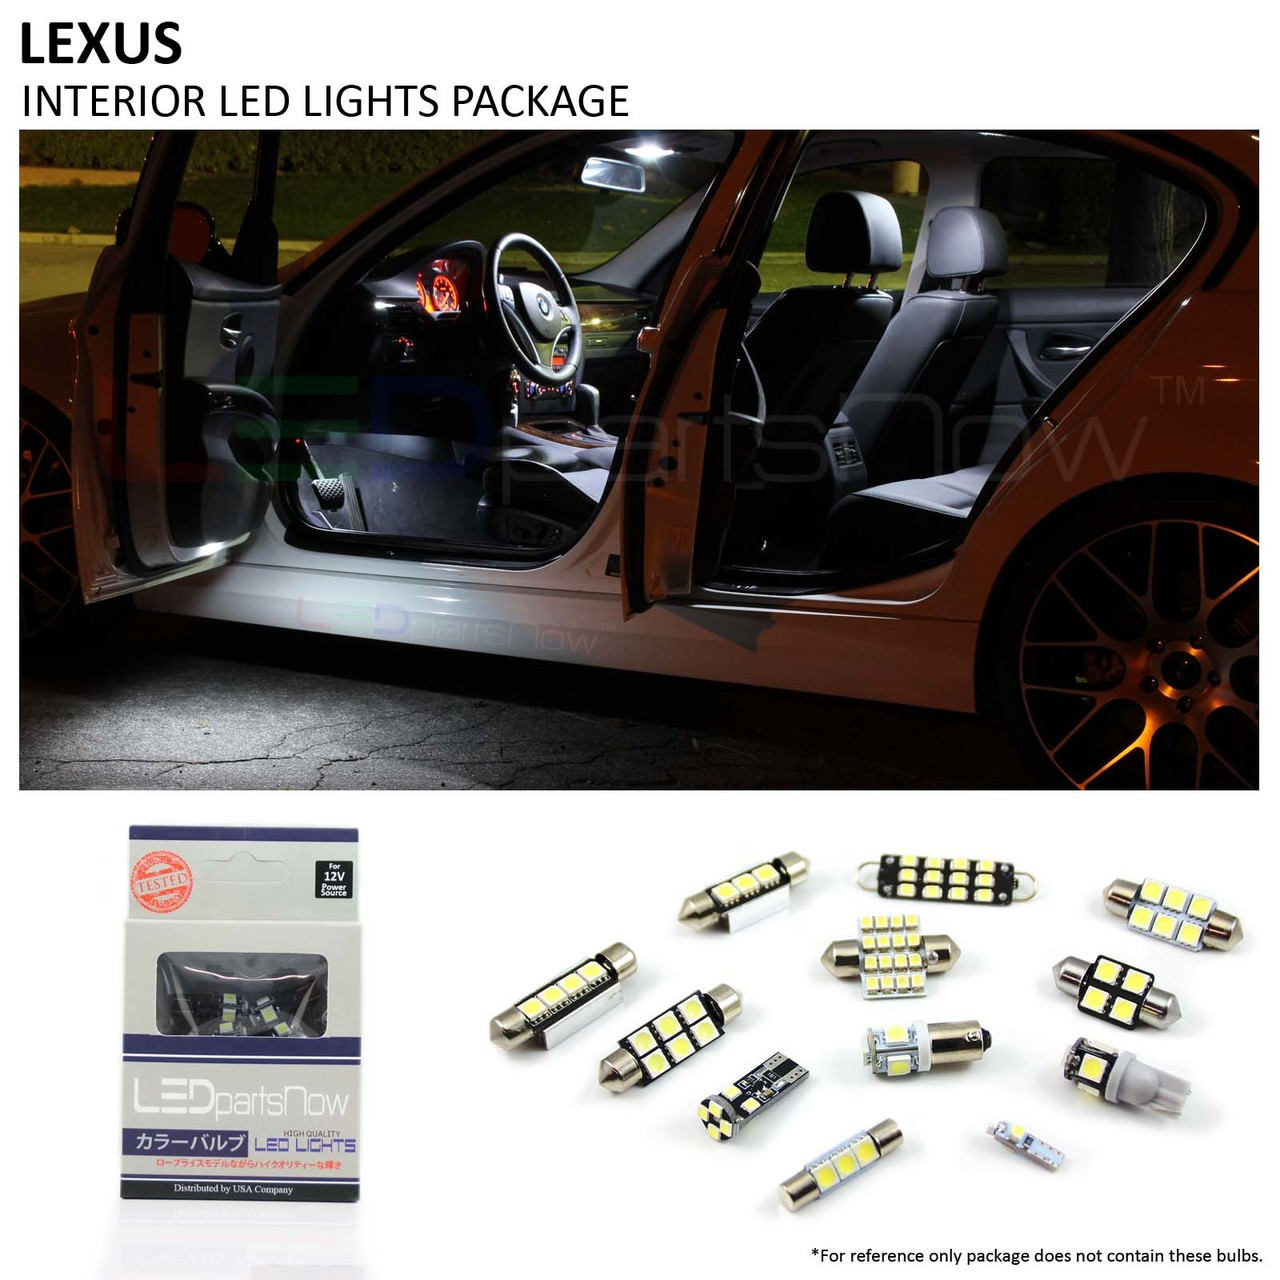 2010 2015 Lexus Rx Interior Led Lights Package Cars Lexus RX 350 Lexus Rx  350 Interior Light Wiring Diagram